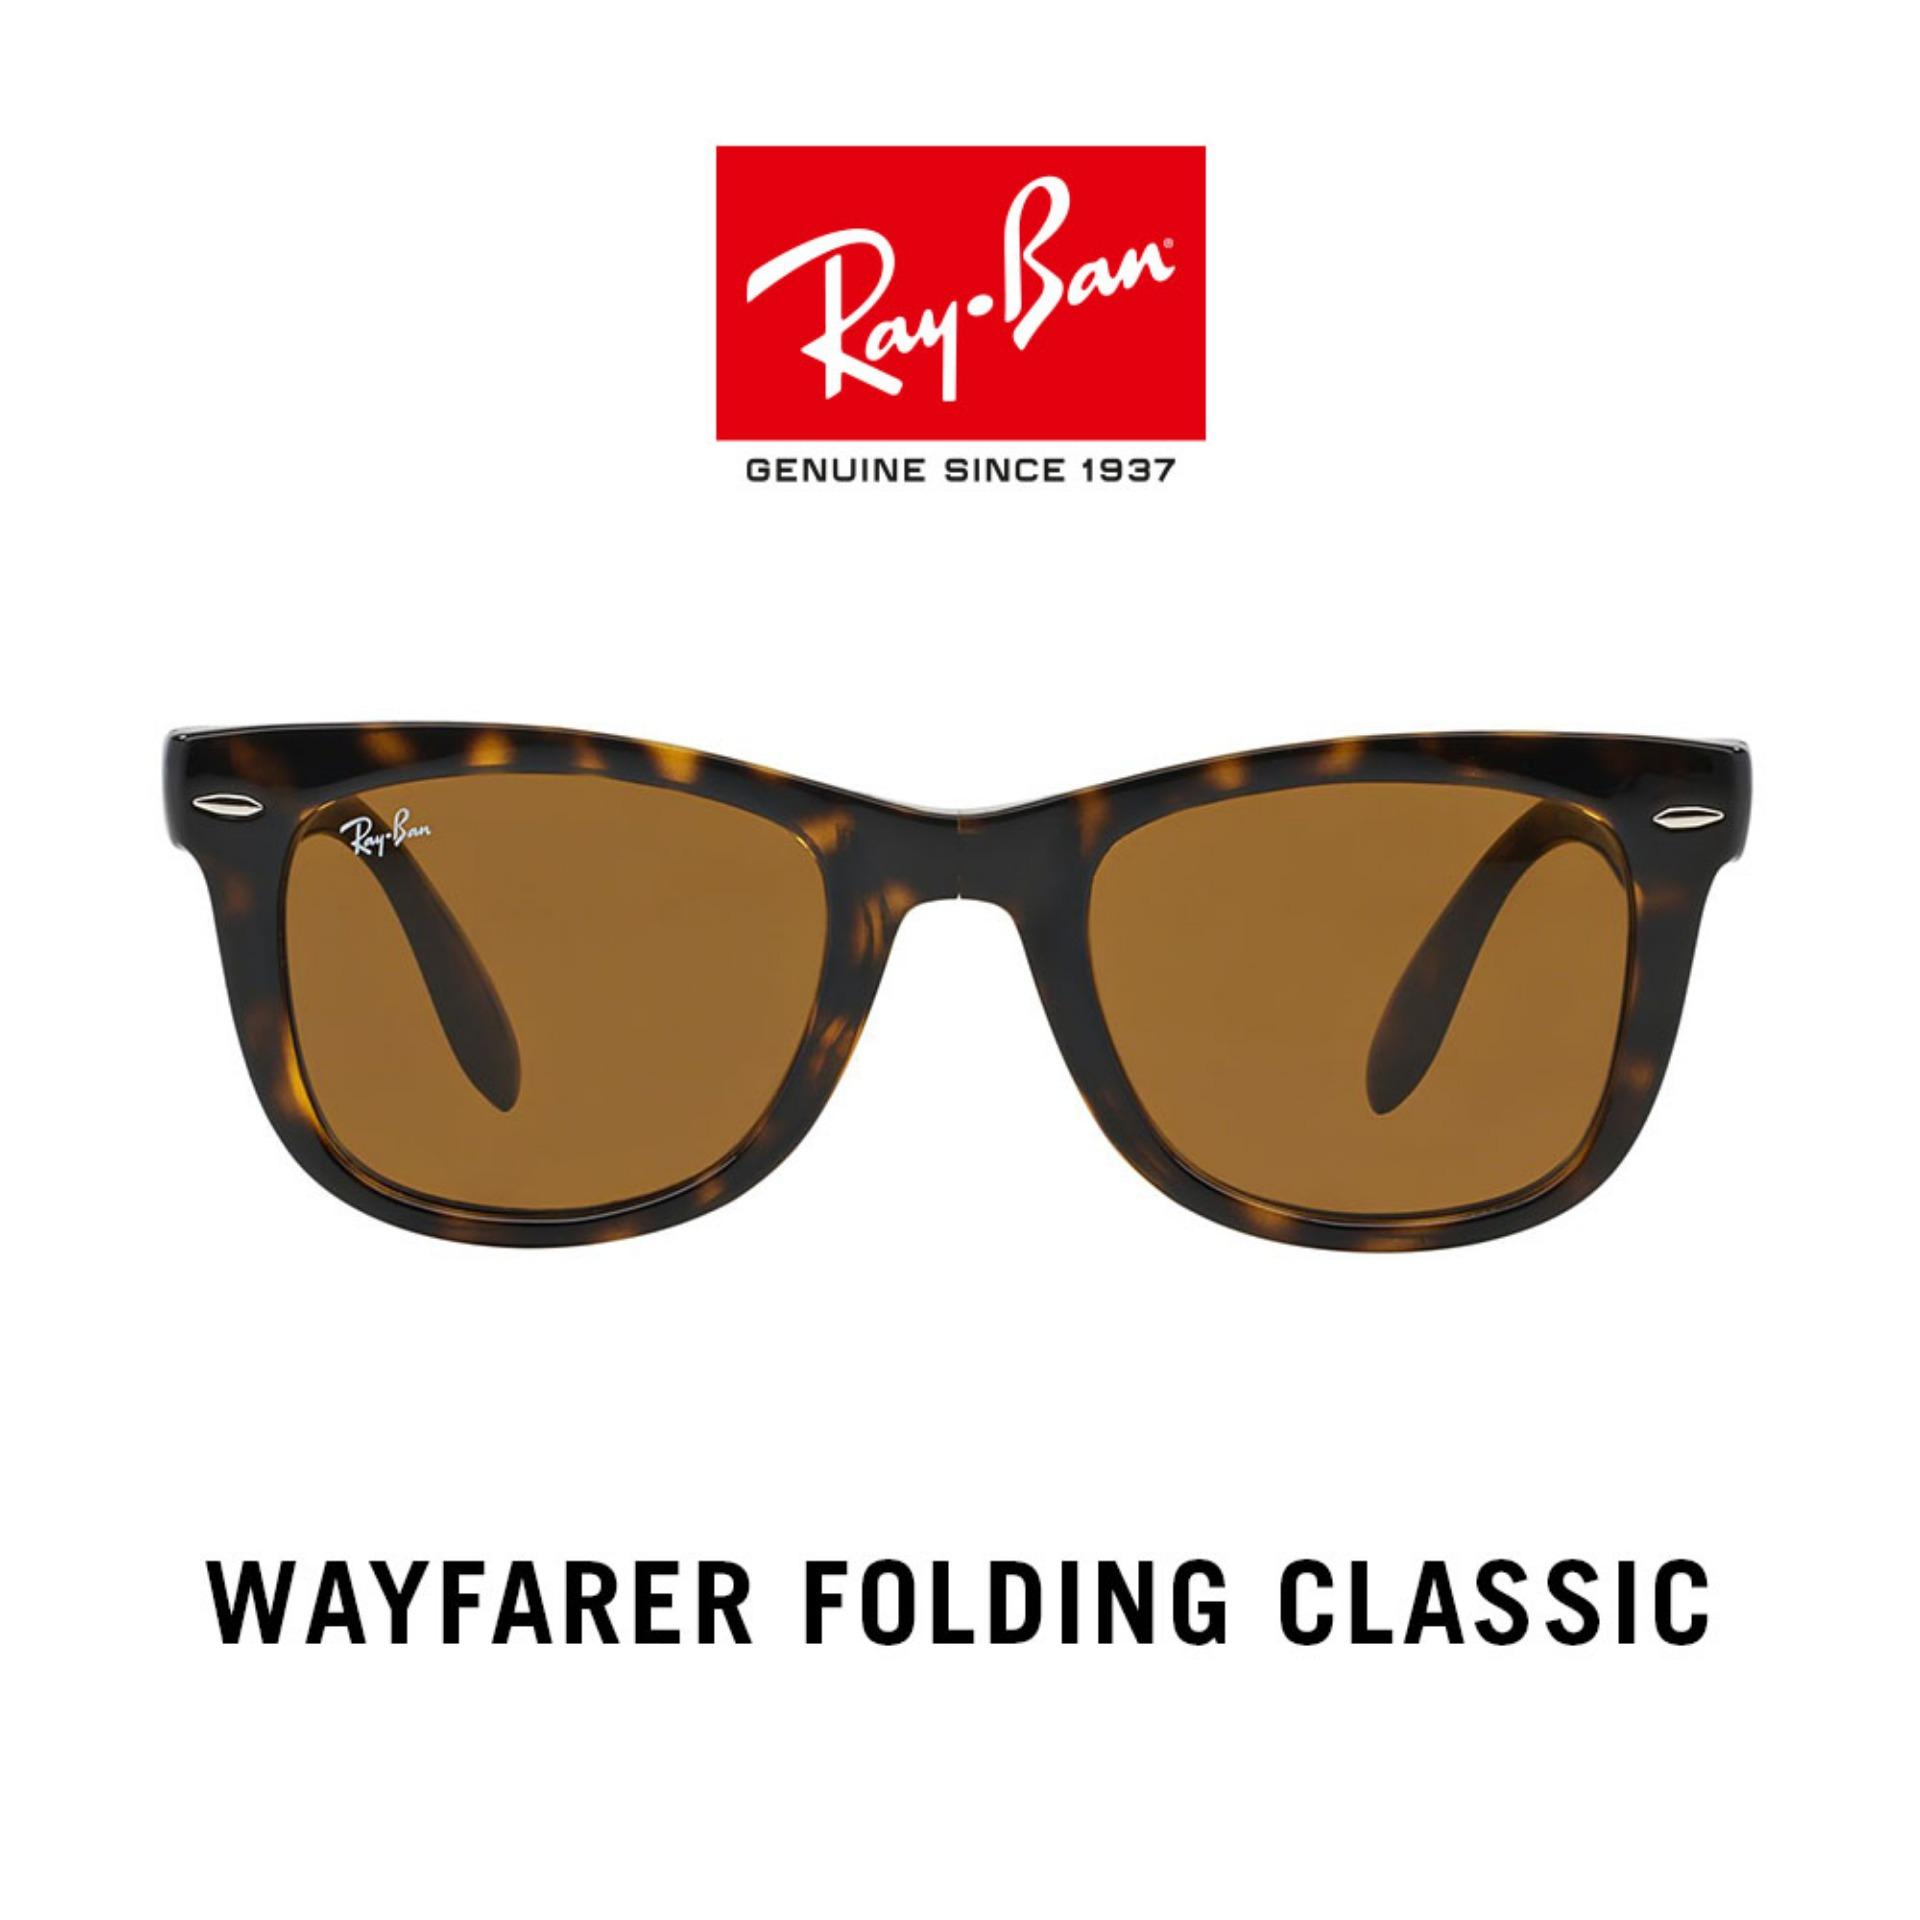 e44345fb743e4 Ray Ban Philippines  Ray Ban price list - Shades   Sunglasses for ...